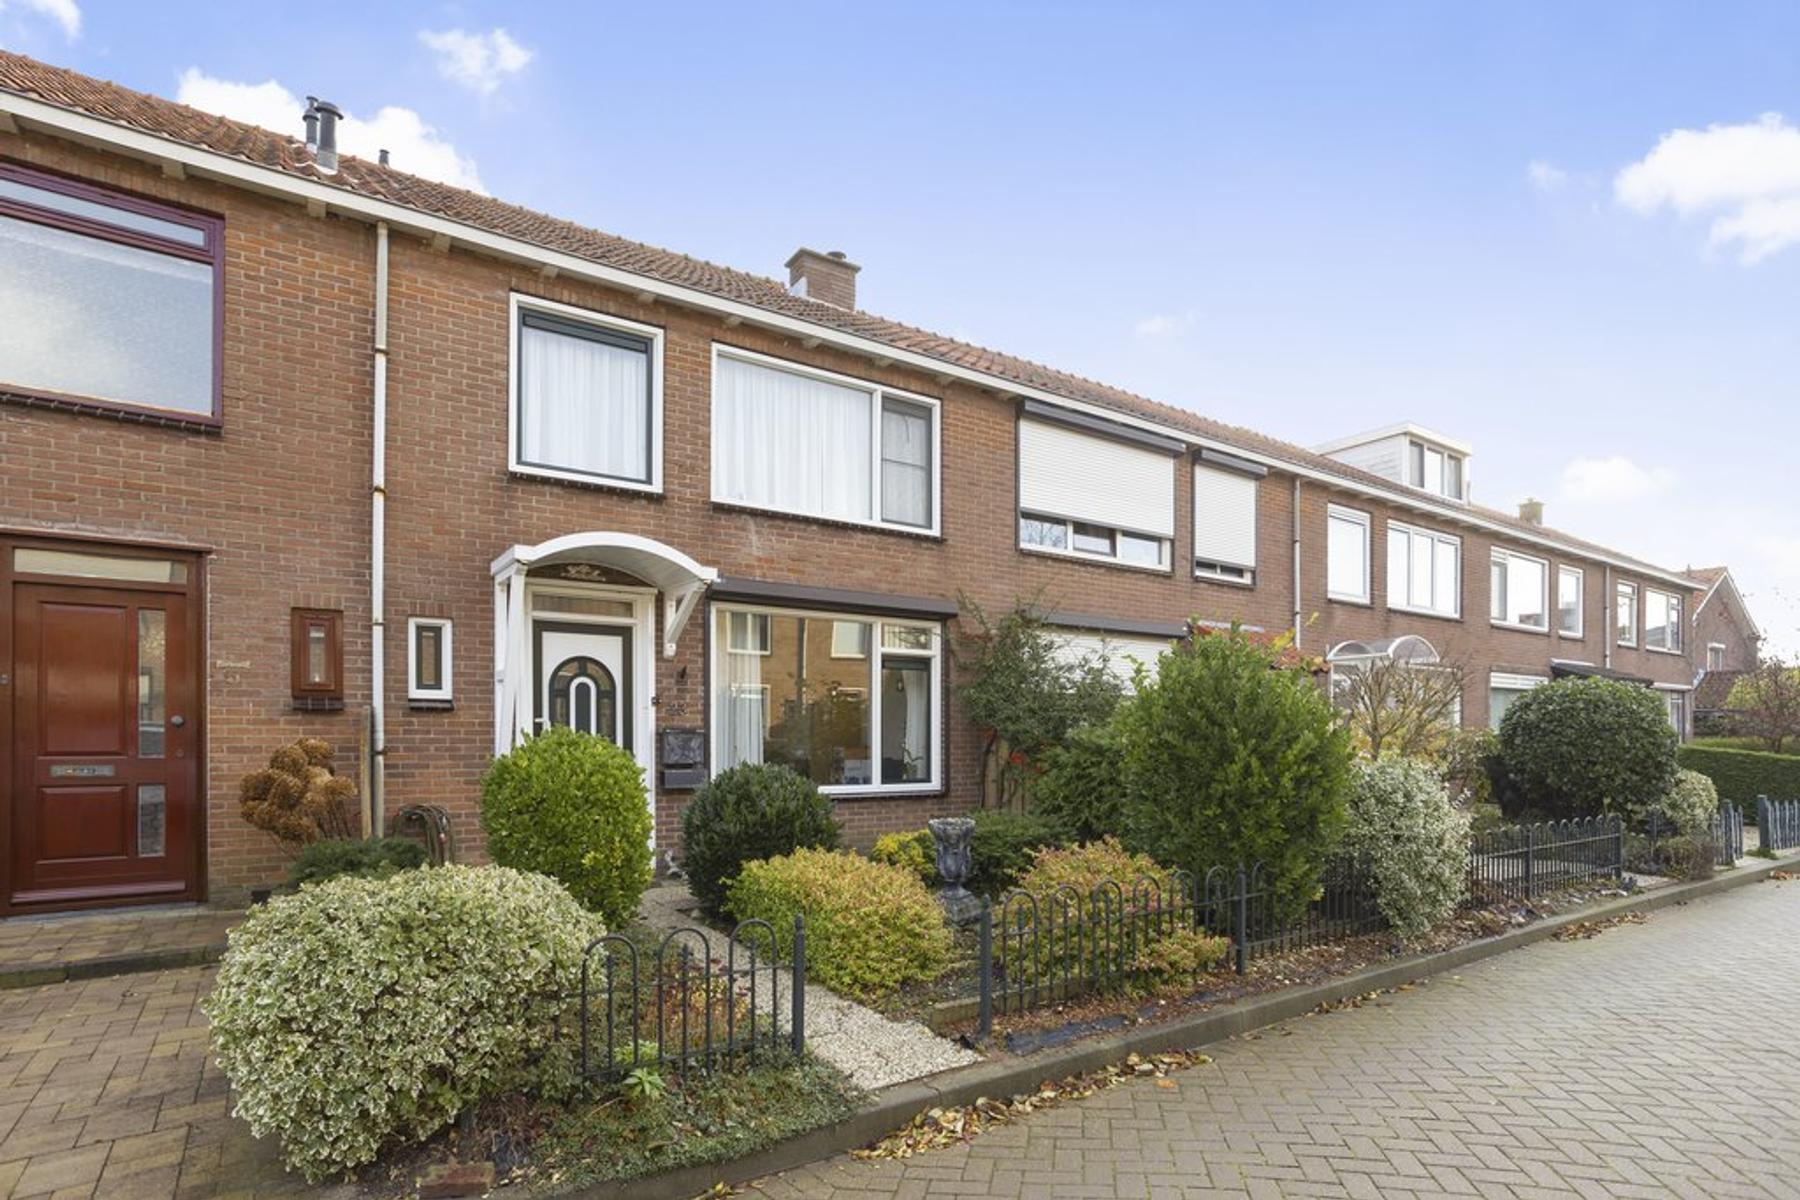 Willems Fopsstraat 23 in Hellevoetsluis 3222 CT